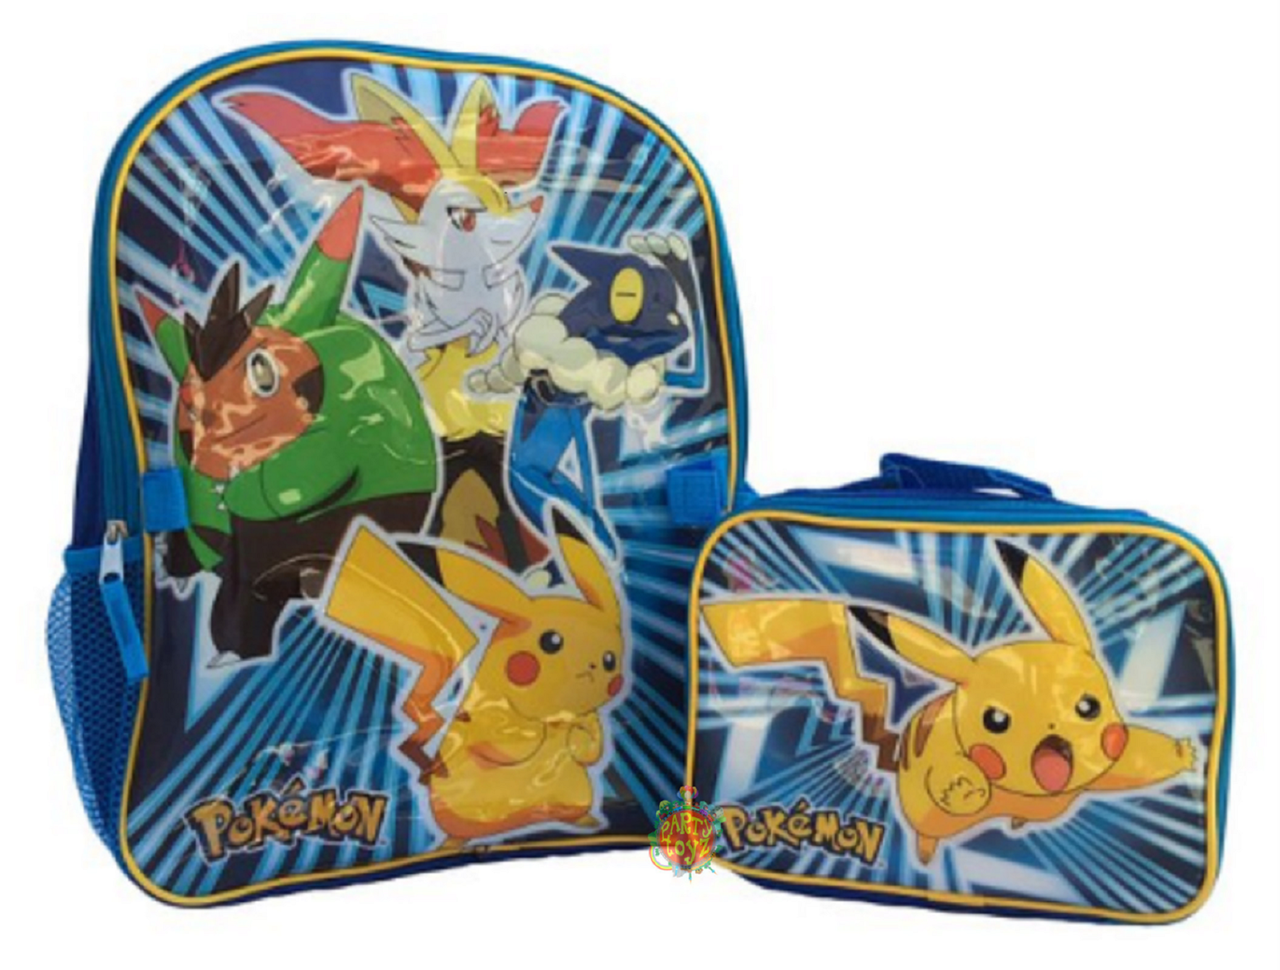 Pokemon 16 Inch Large Backpack With Lunch Box - Pikachu